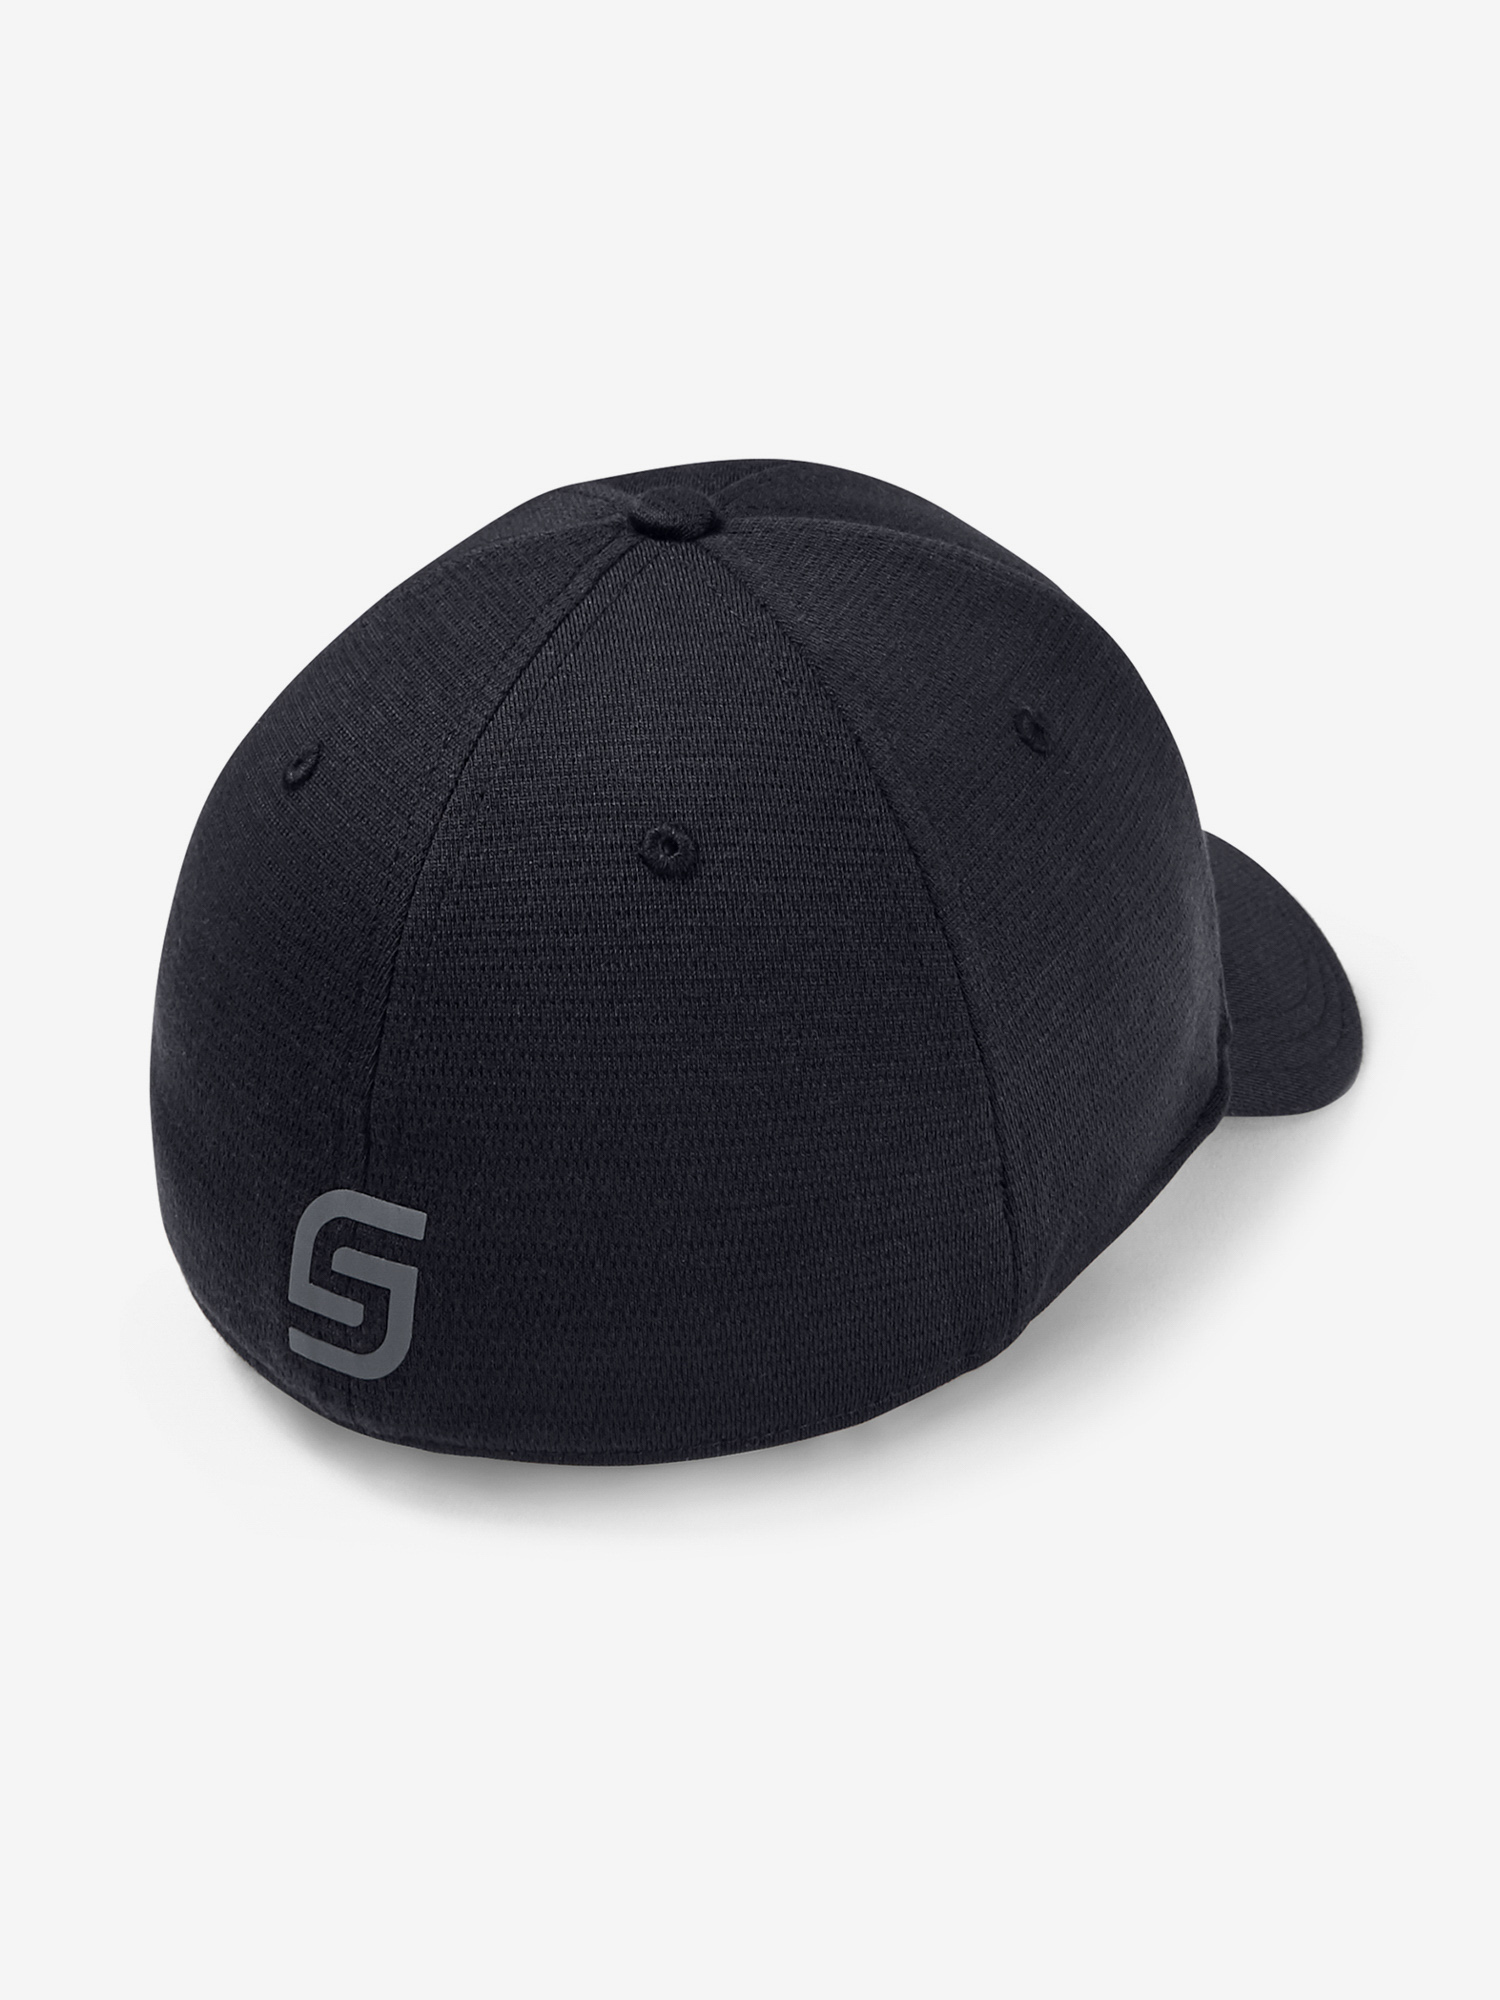 Kšiltovka Under Armour Js Iso-Chill Tour Cap 2.0 (2)